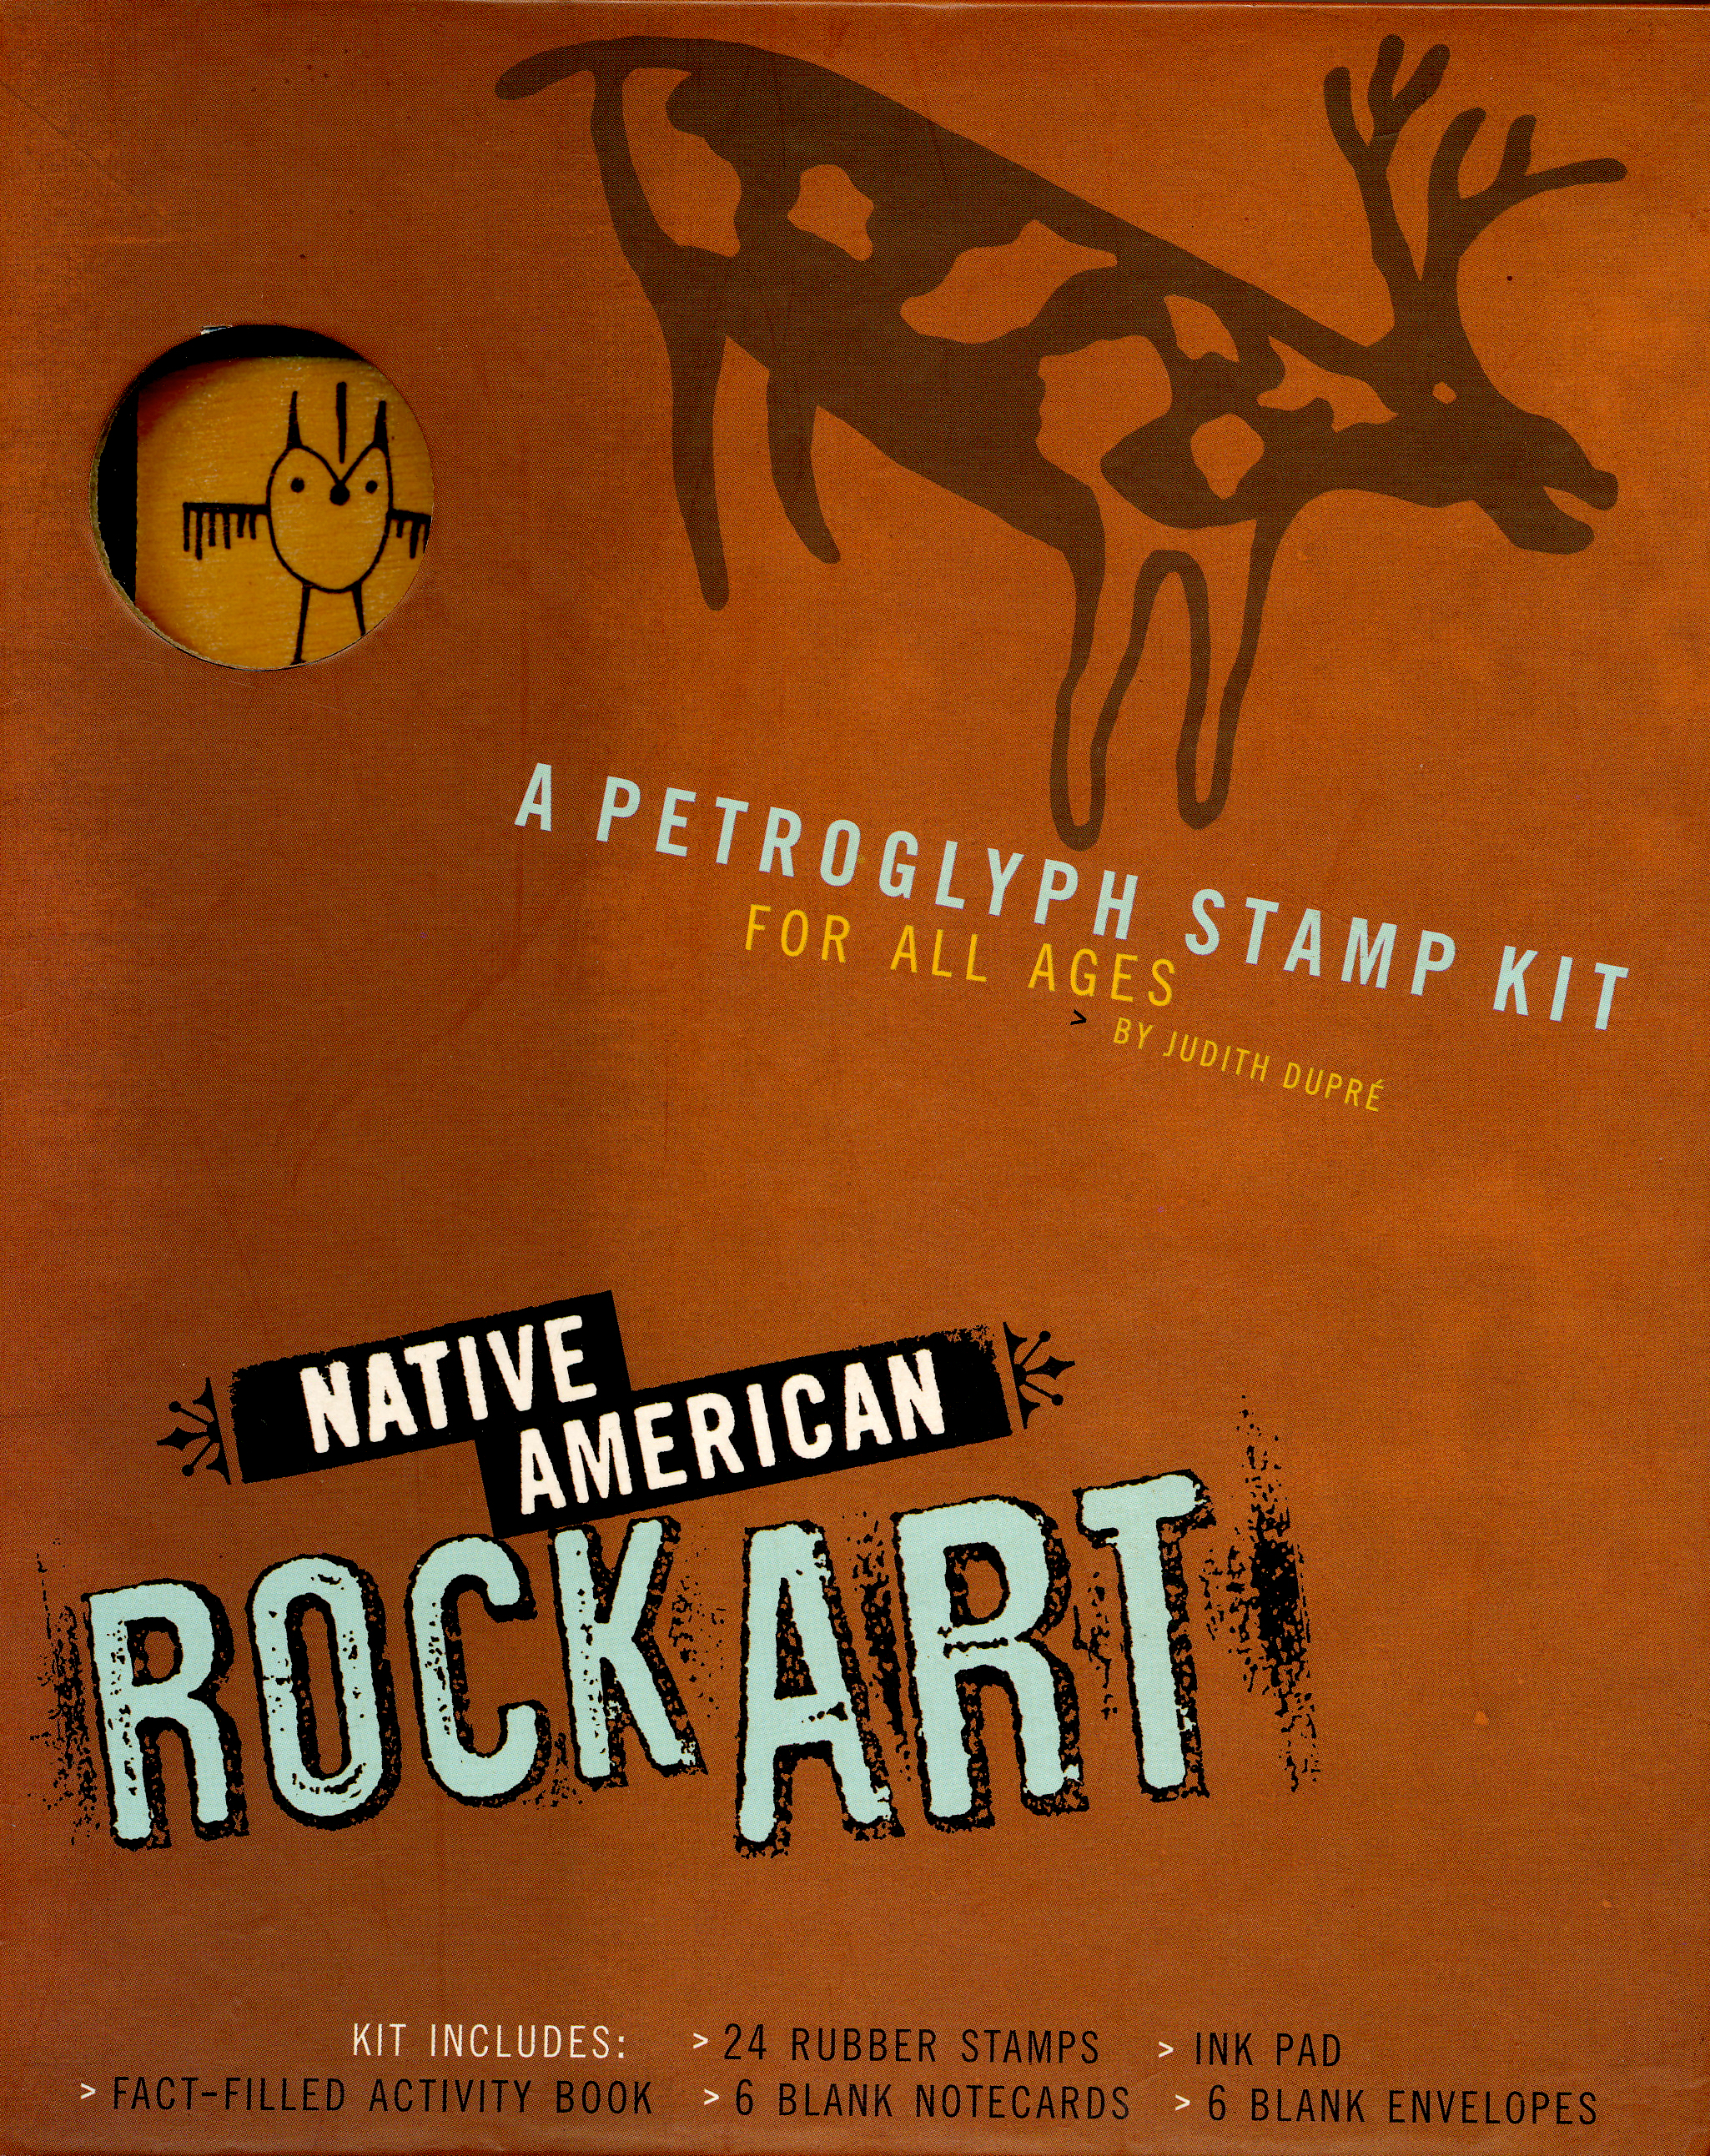 02 Rock Art Cover